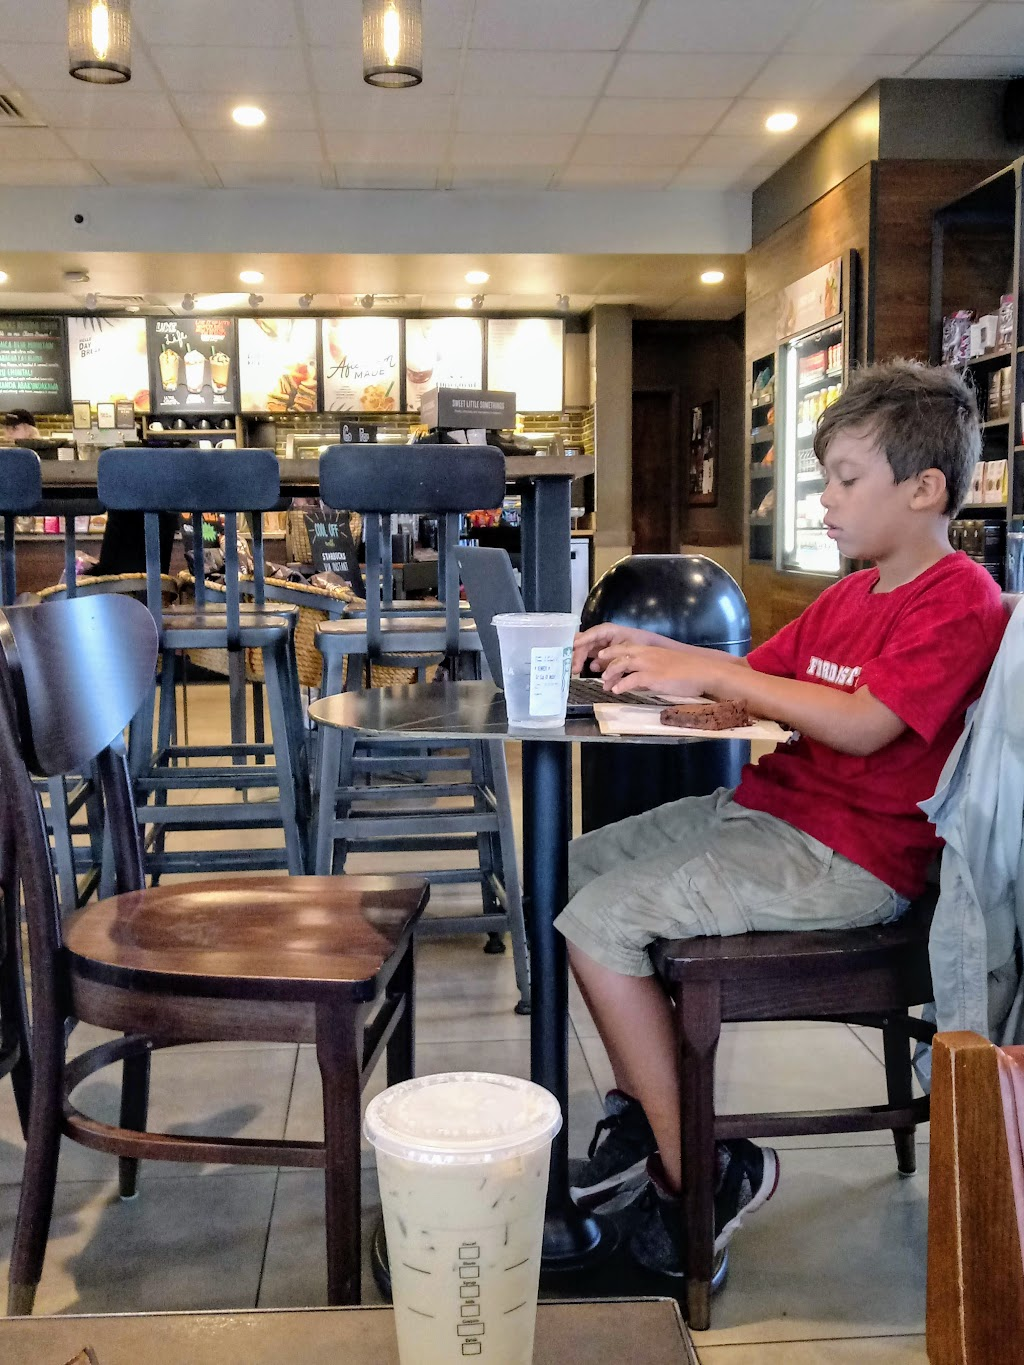 Starbucks   cafe   608 W Tennessee St, Tallahassee, FL 32304, USA   8502220014 OR +1 850-222-0014